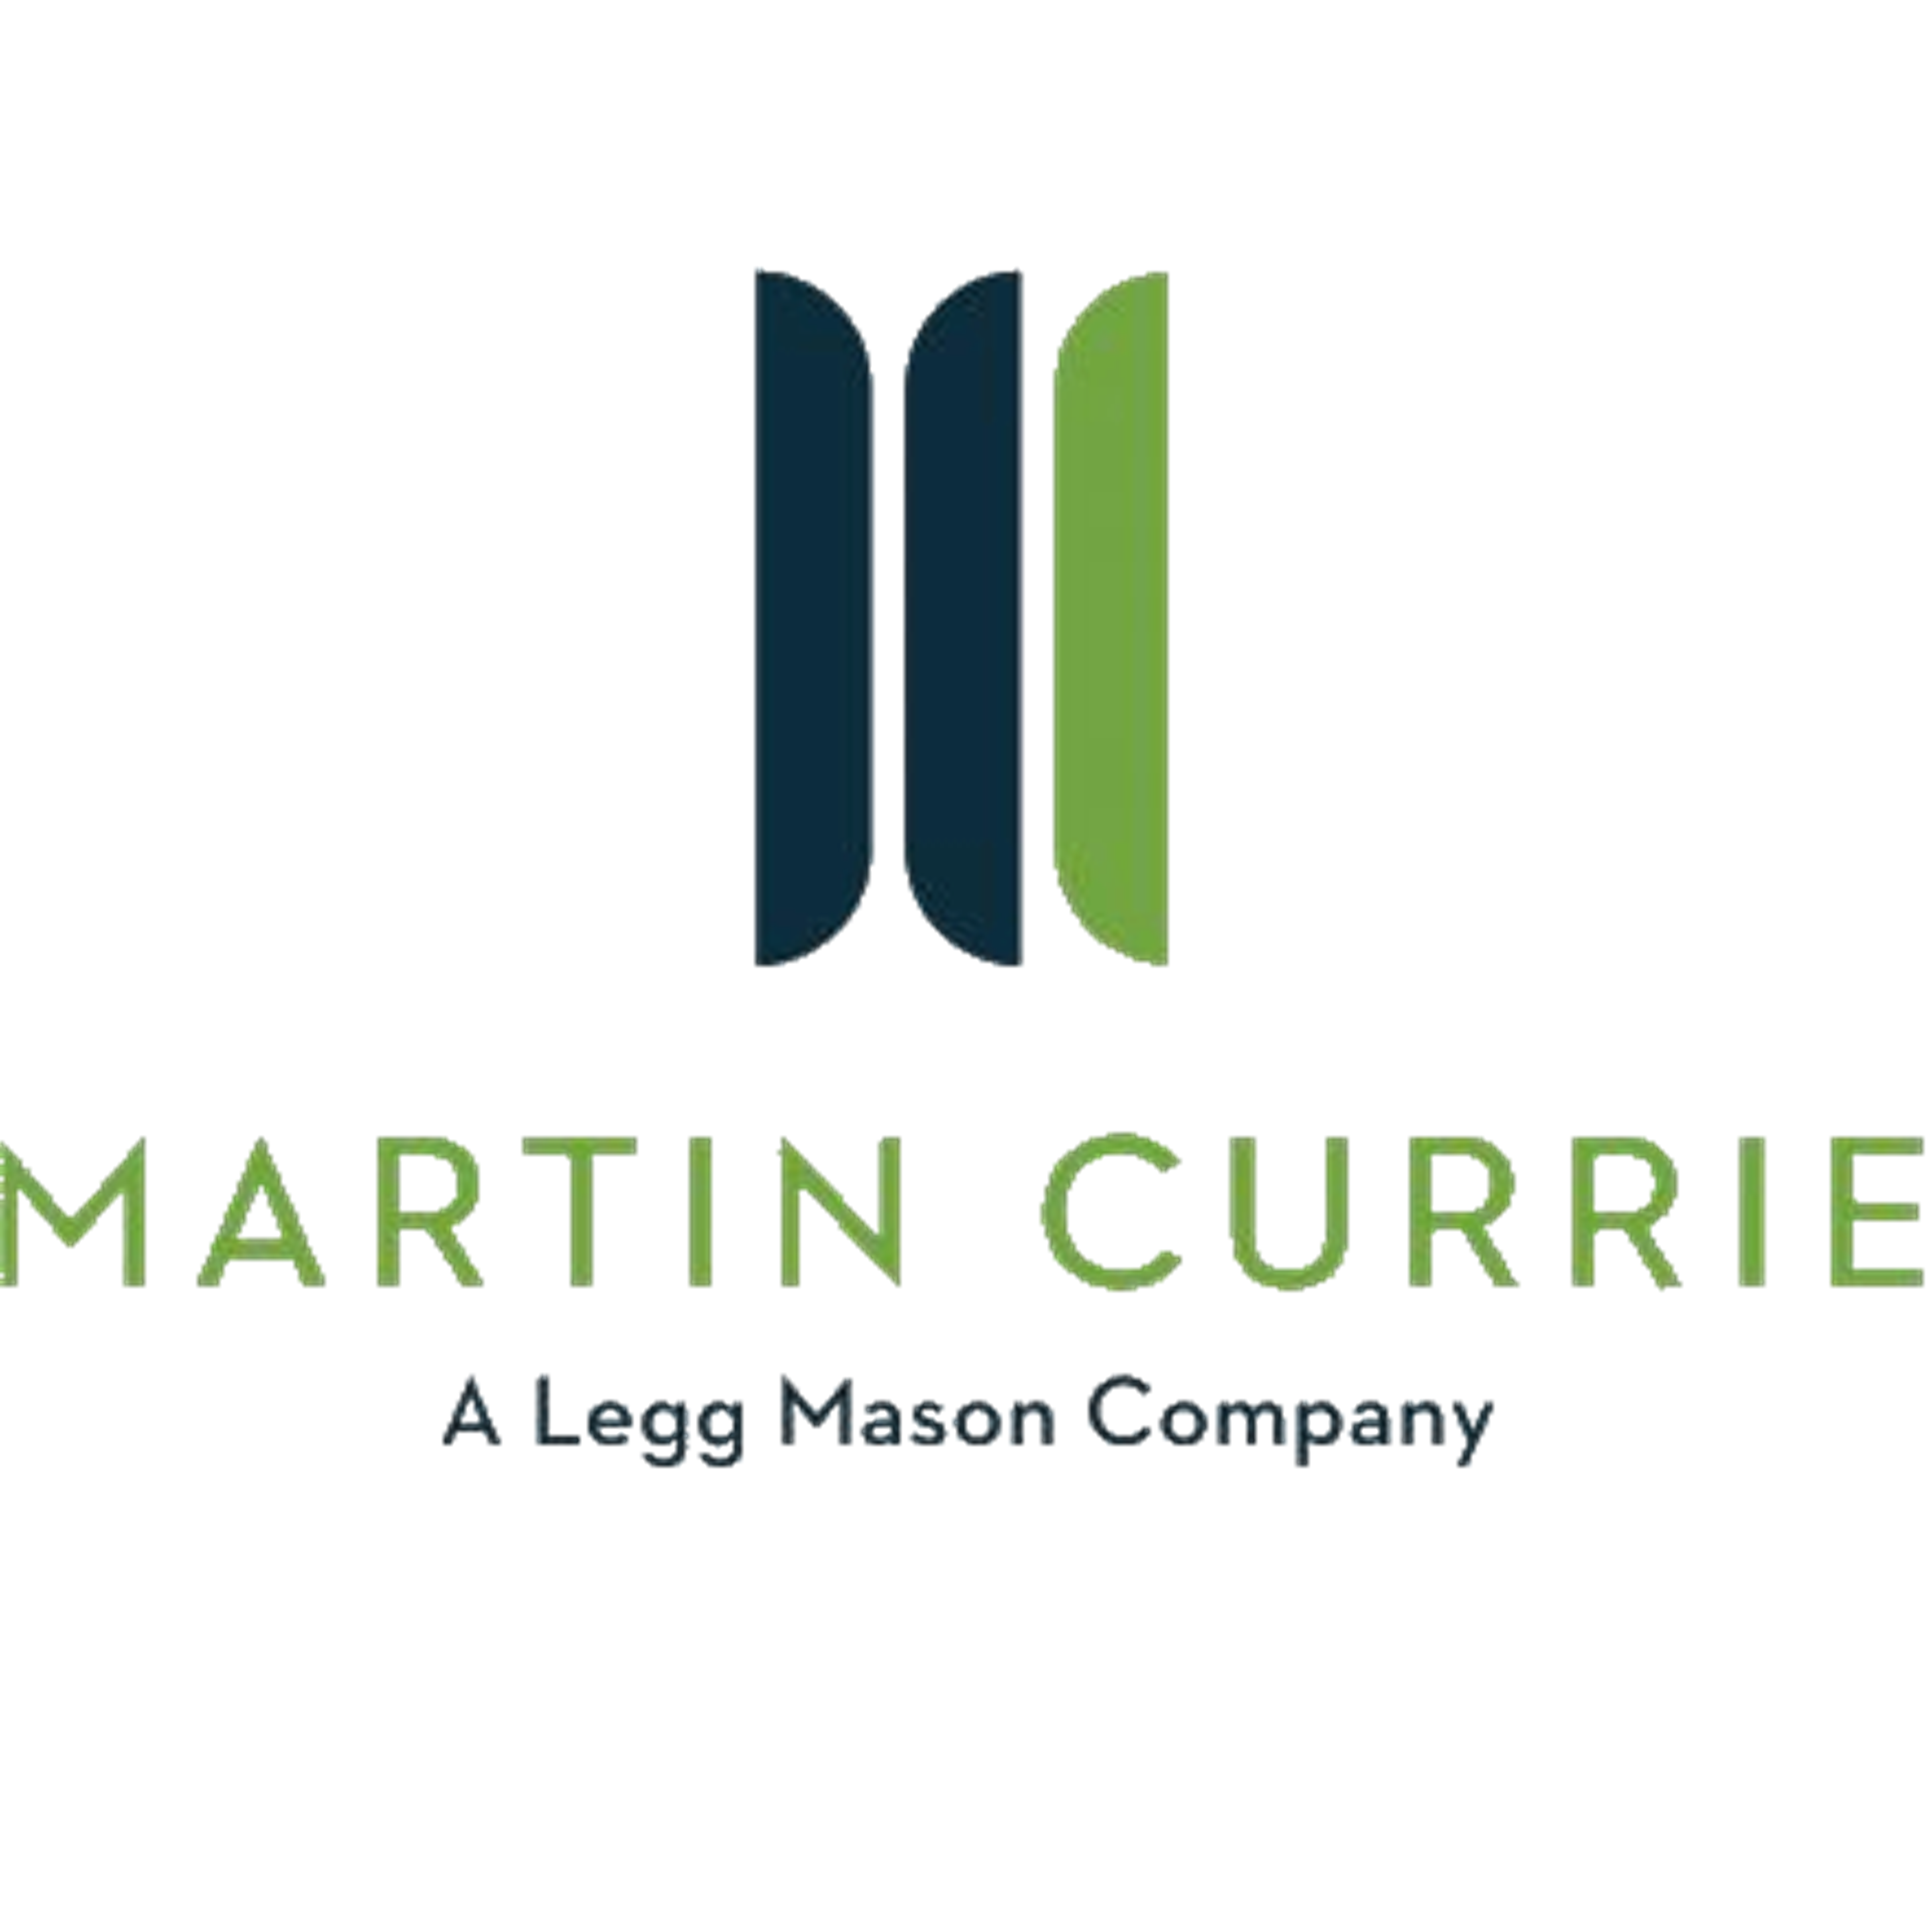 Martin Currie Investment Management